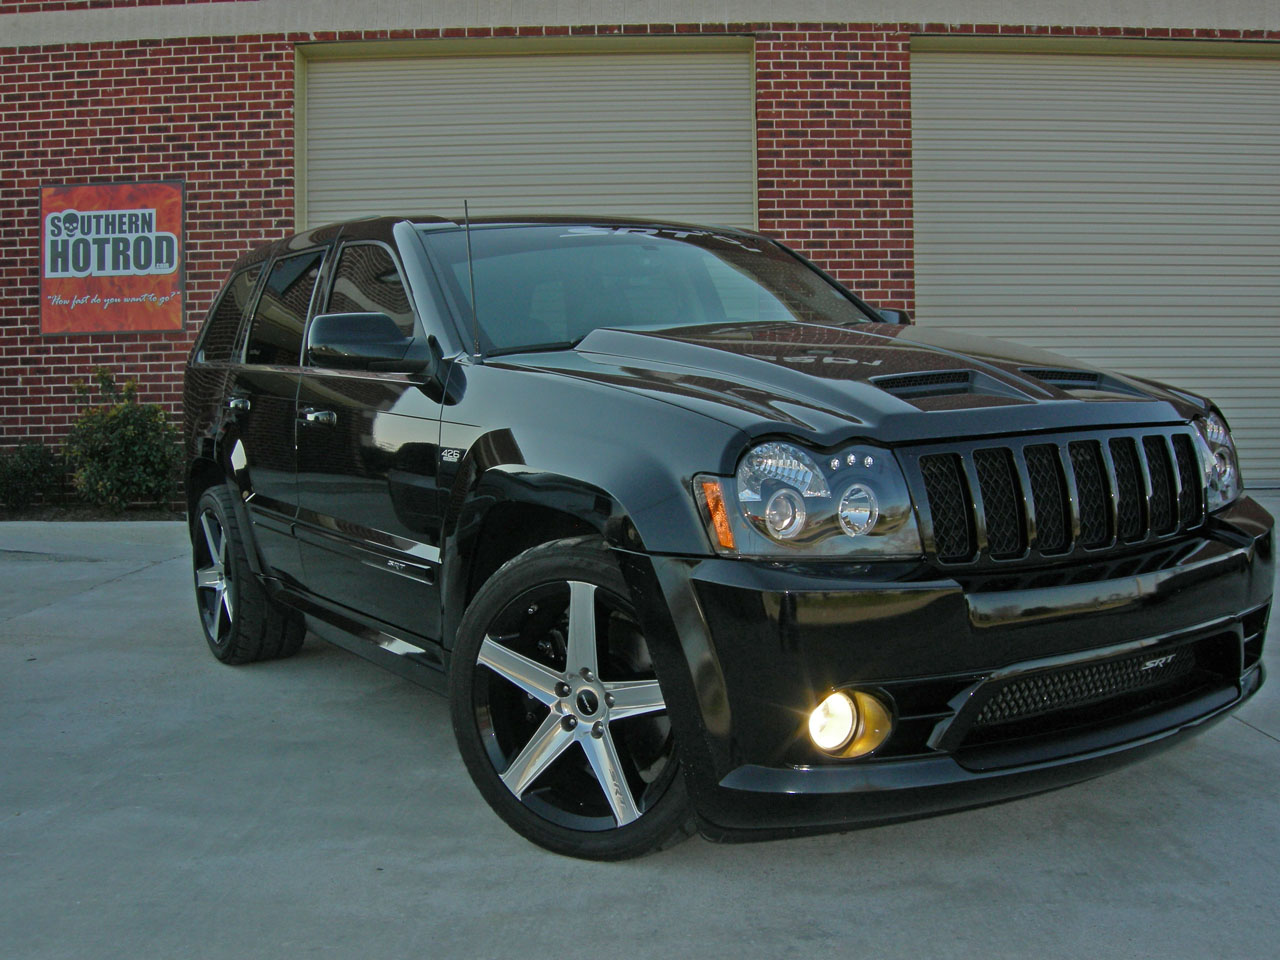 2007 jeep cherokee srt8 twinturbocreations tt 1 4 mile. Black Bedroom Furniture Sets. Home Design Ideas